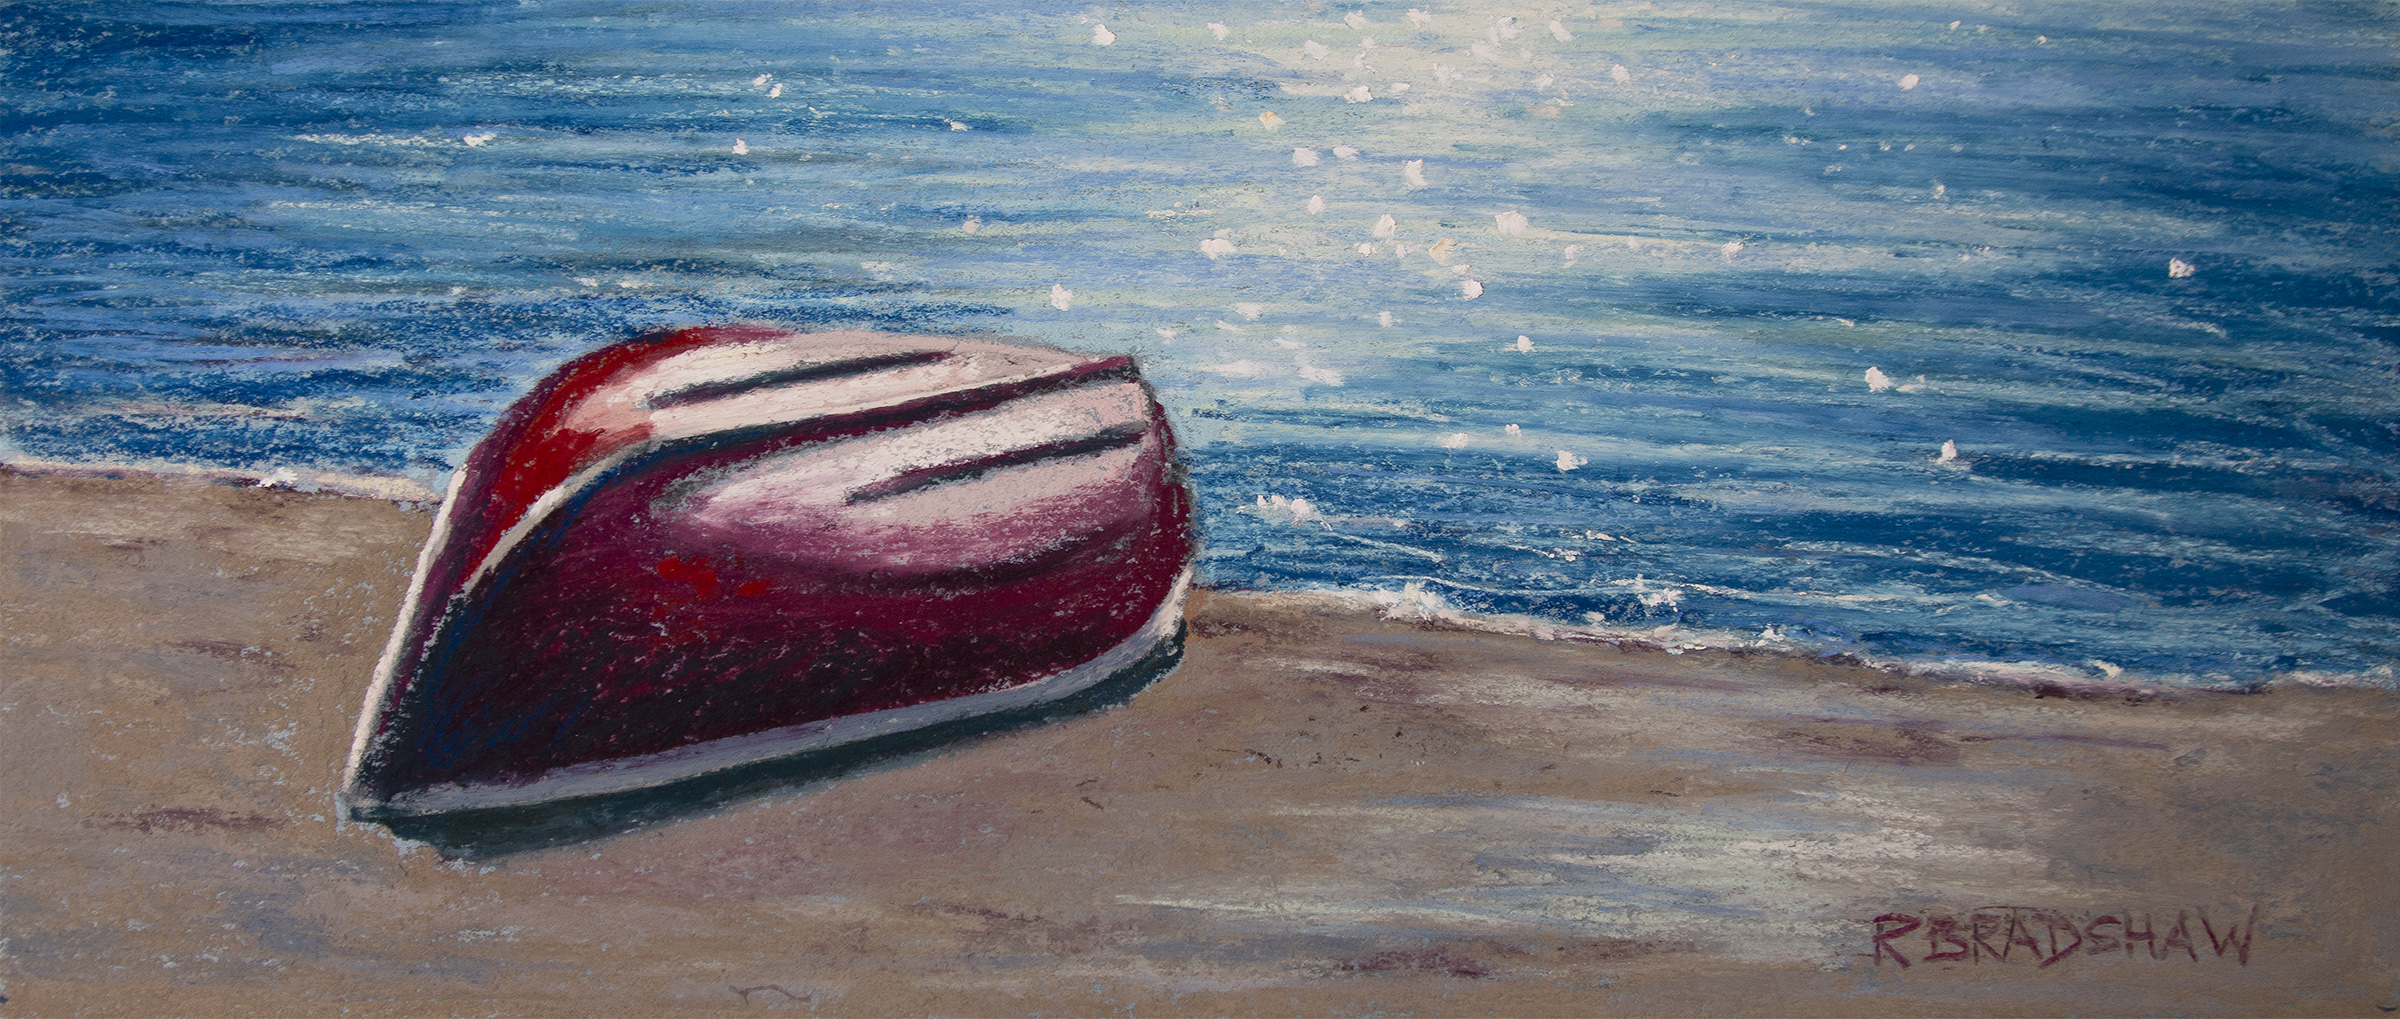 An image of Renata Bradshaw's pastel on paper painting Little Red Canoe